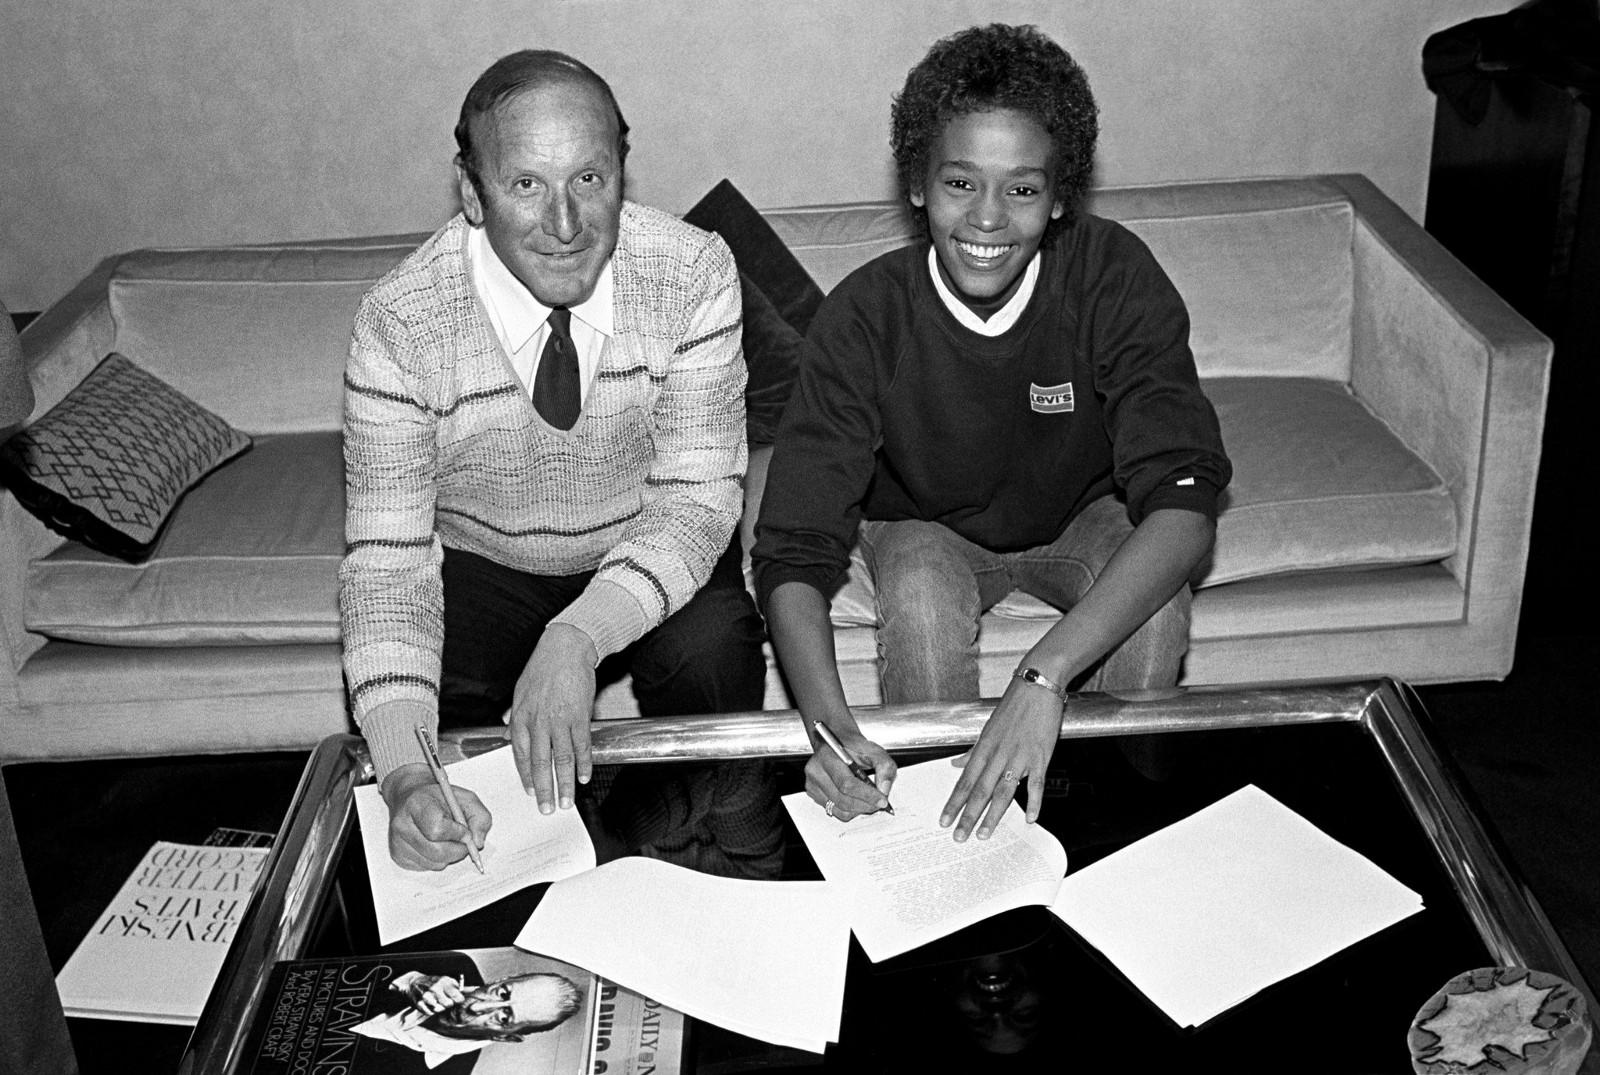 Devising the blueprint leanne de souza medium clive davis and whitney houston signing her contract with arista records april 10 1983 photo credit ebet robertsredferns malvernweather Image collections